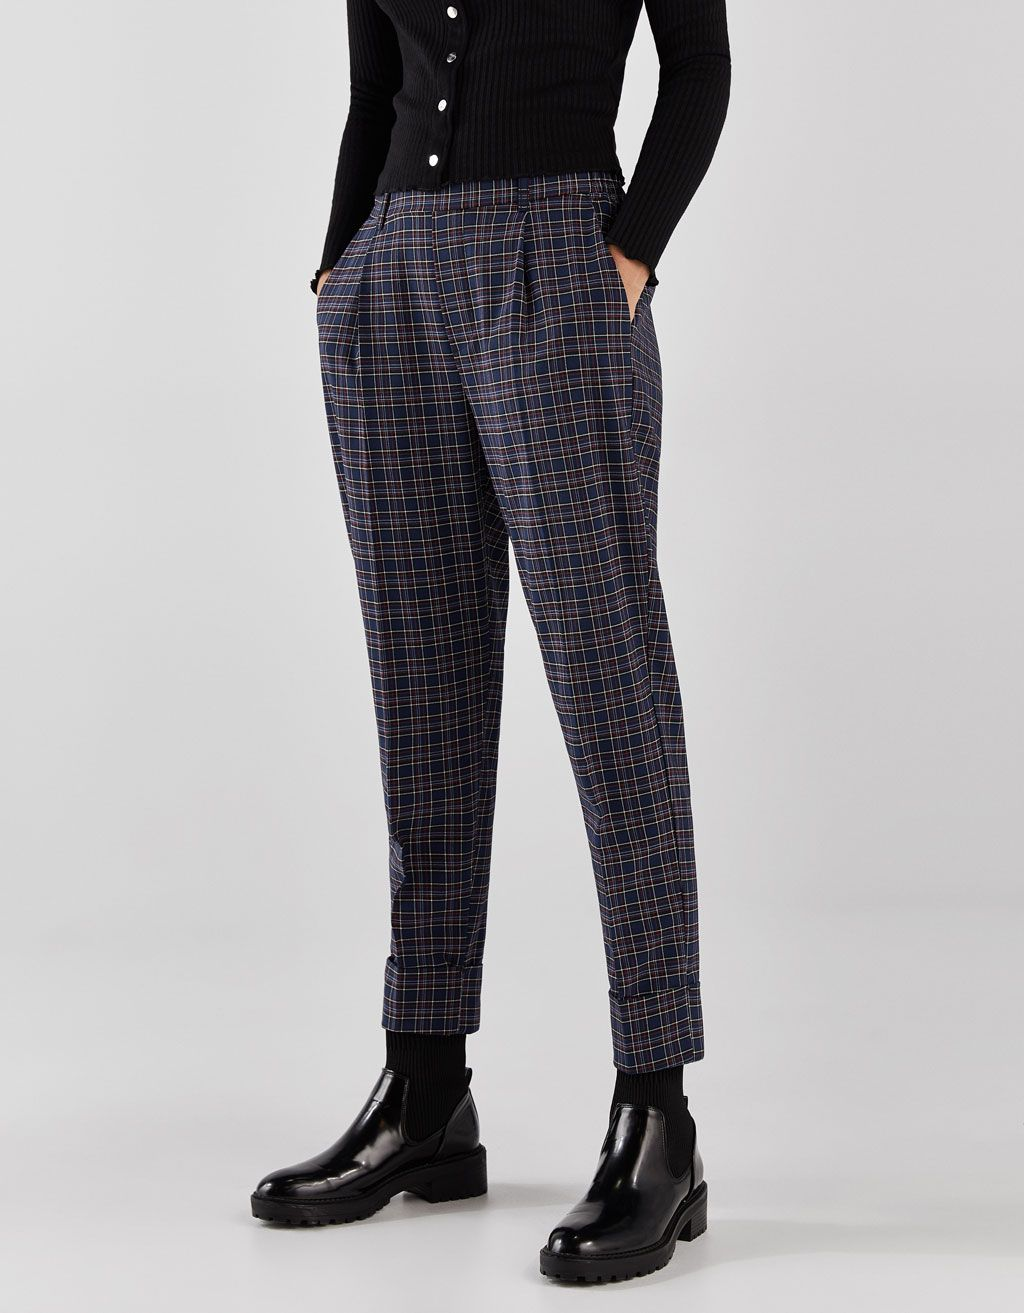 Checked Jogging Trousers With Darts Clothes Pants Fashion